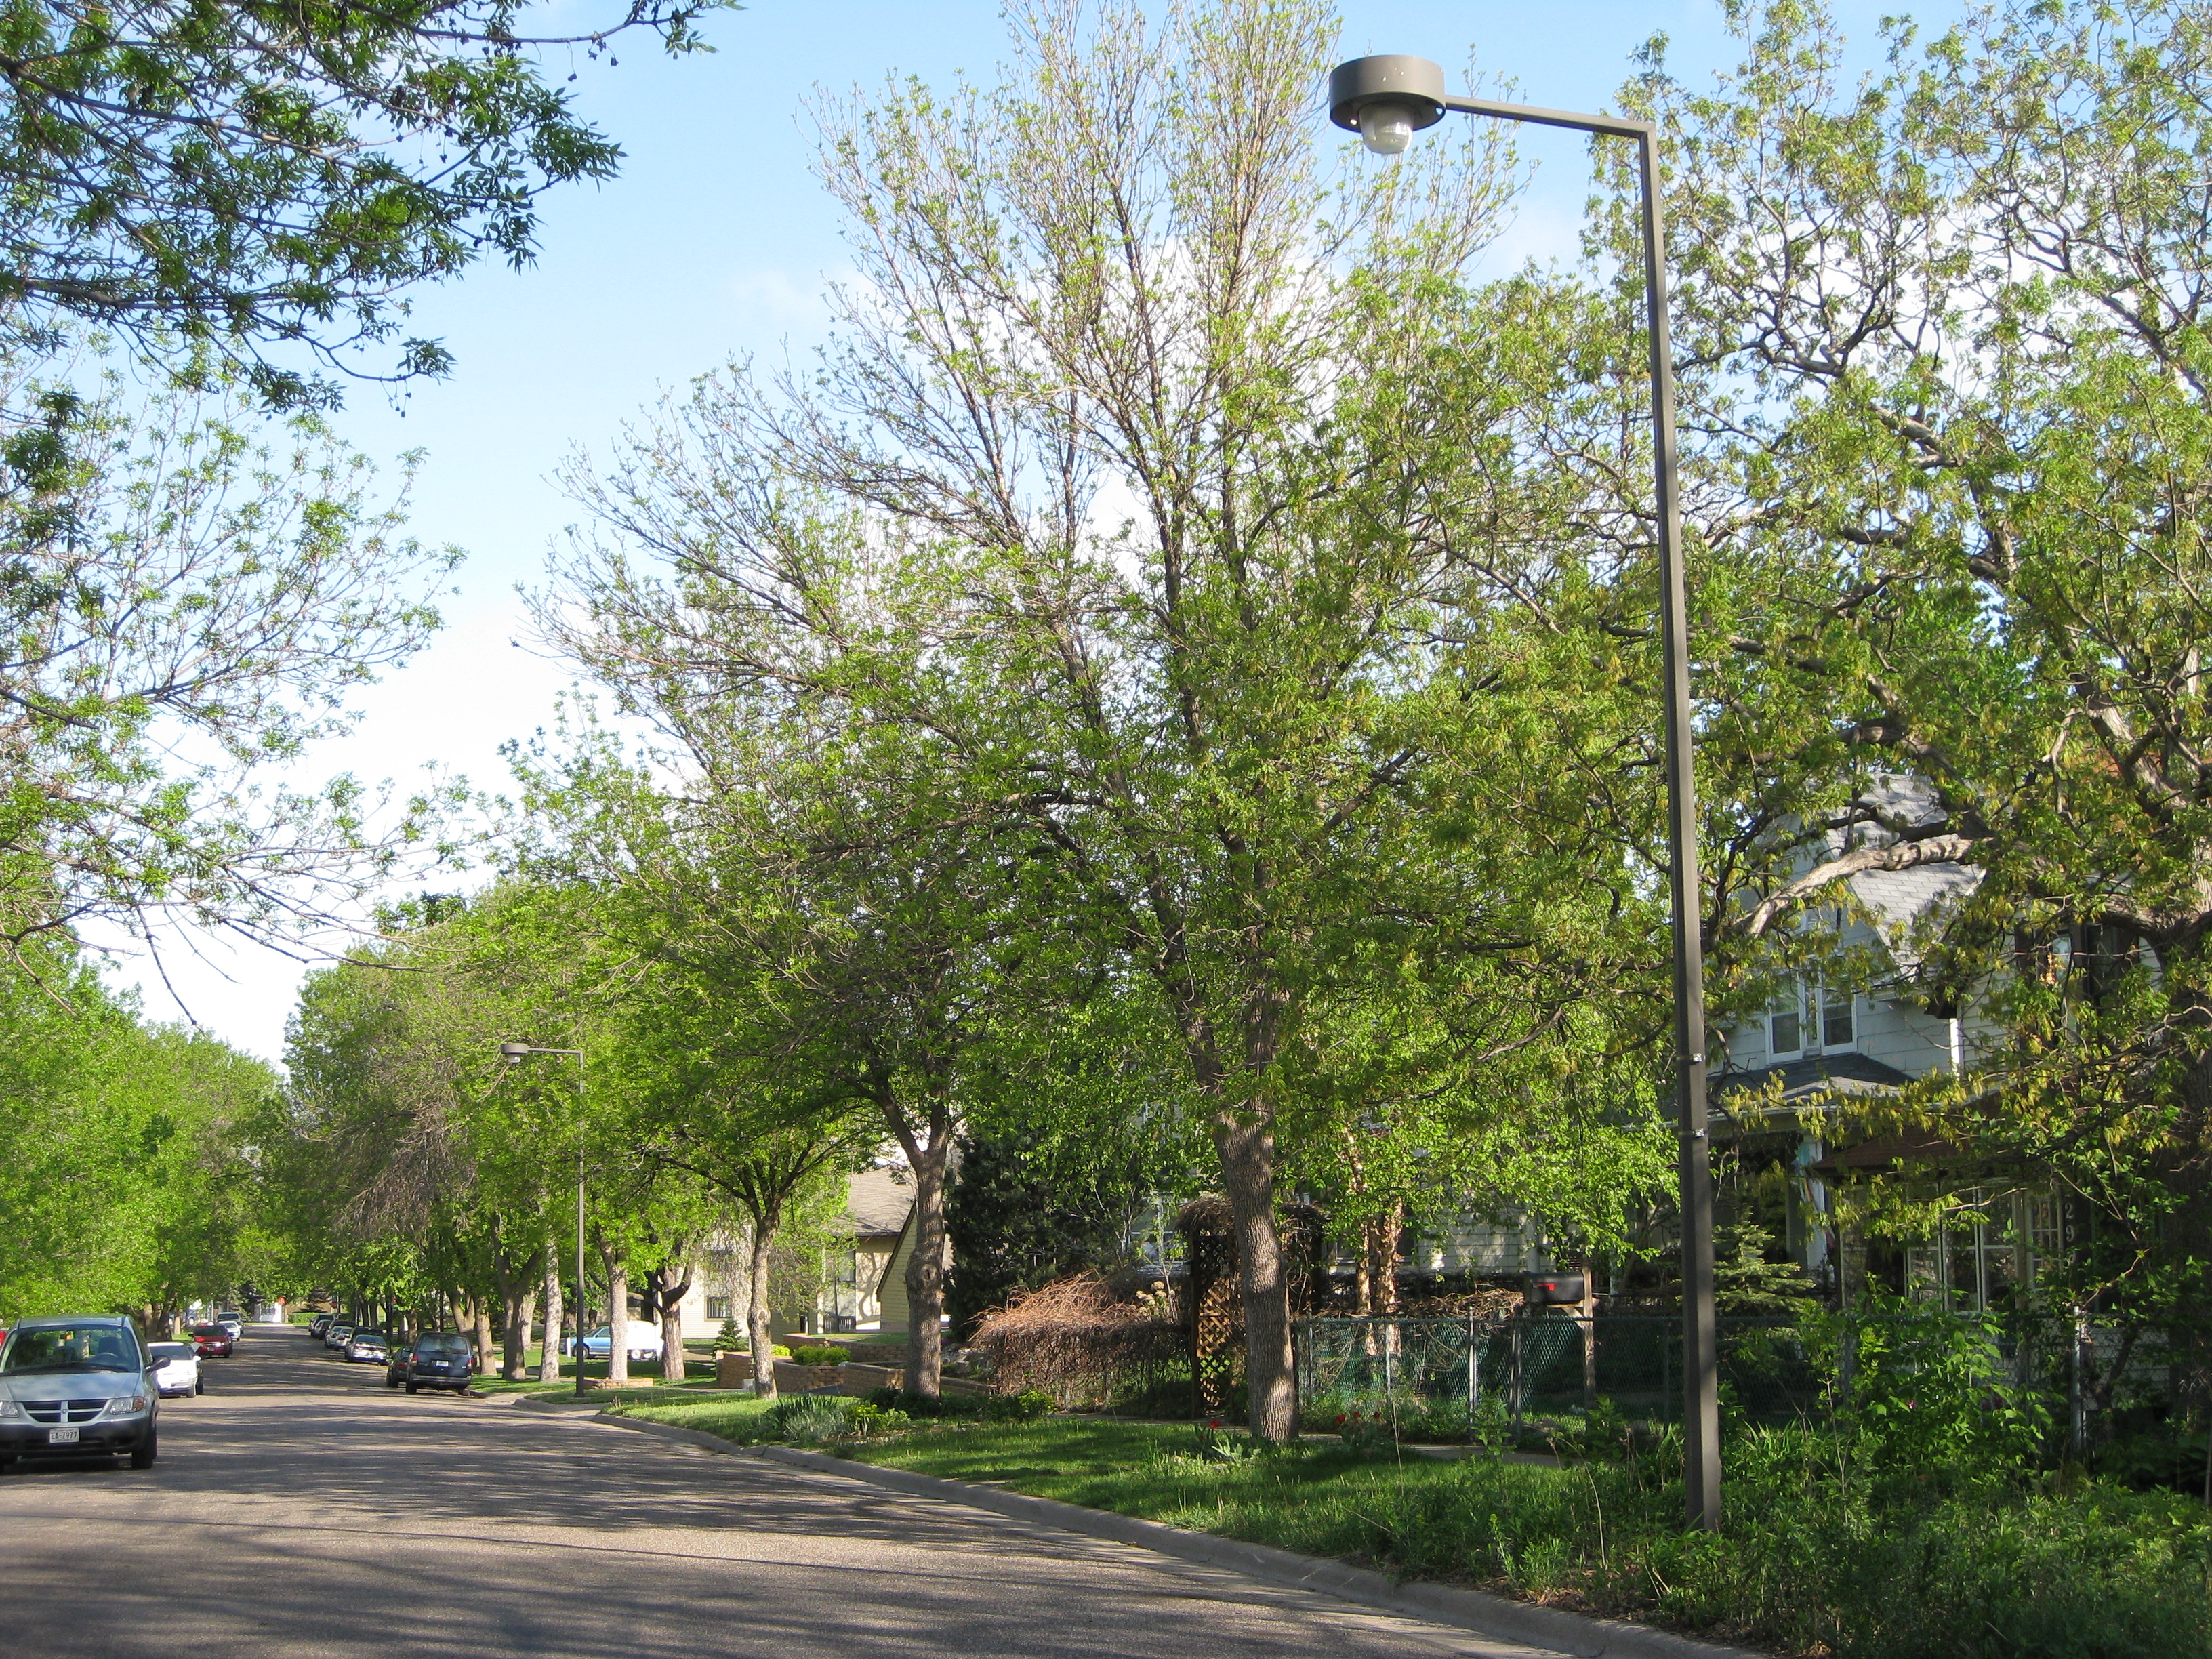 St. Paul street lined with infested ash trees